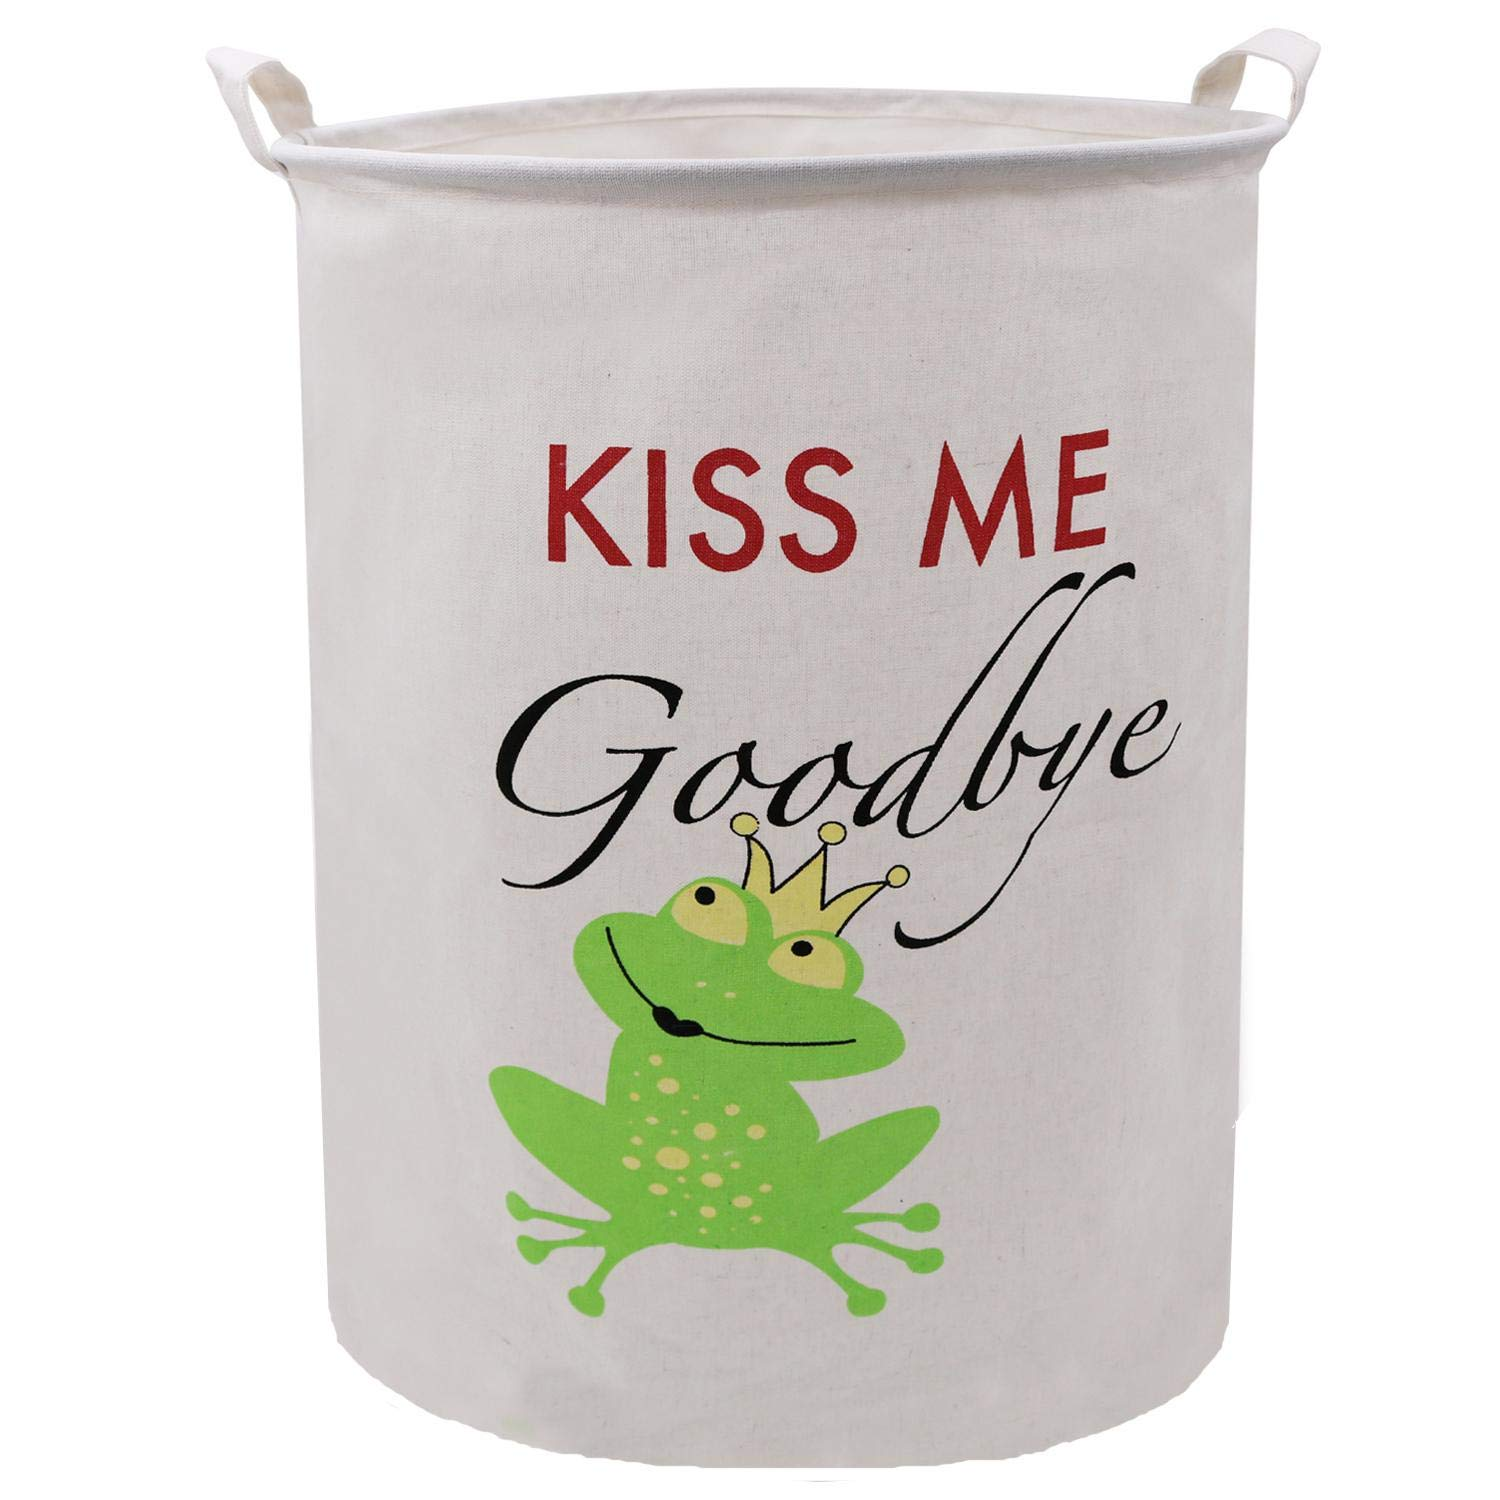 ZUEXT 19.7x15.7 Inch Large Linen Canvas Folding Laundry Basket, Laundry Storage Basket Hamper with Handles, Waterproof Gift Basket for Baby Nursery, College Dorms, Kids Bedroom(Kiss Me Goodbye Frog)